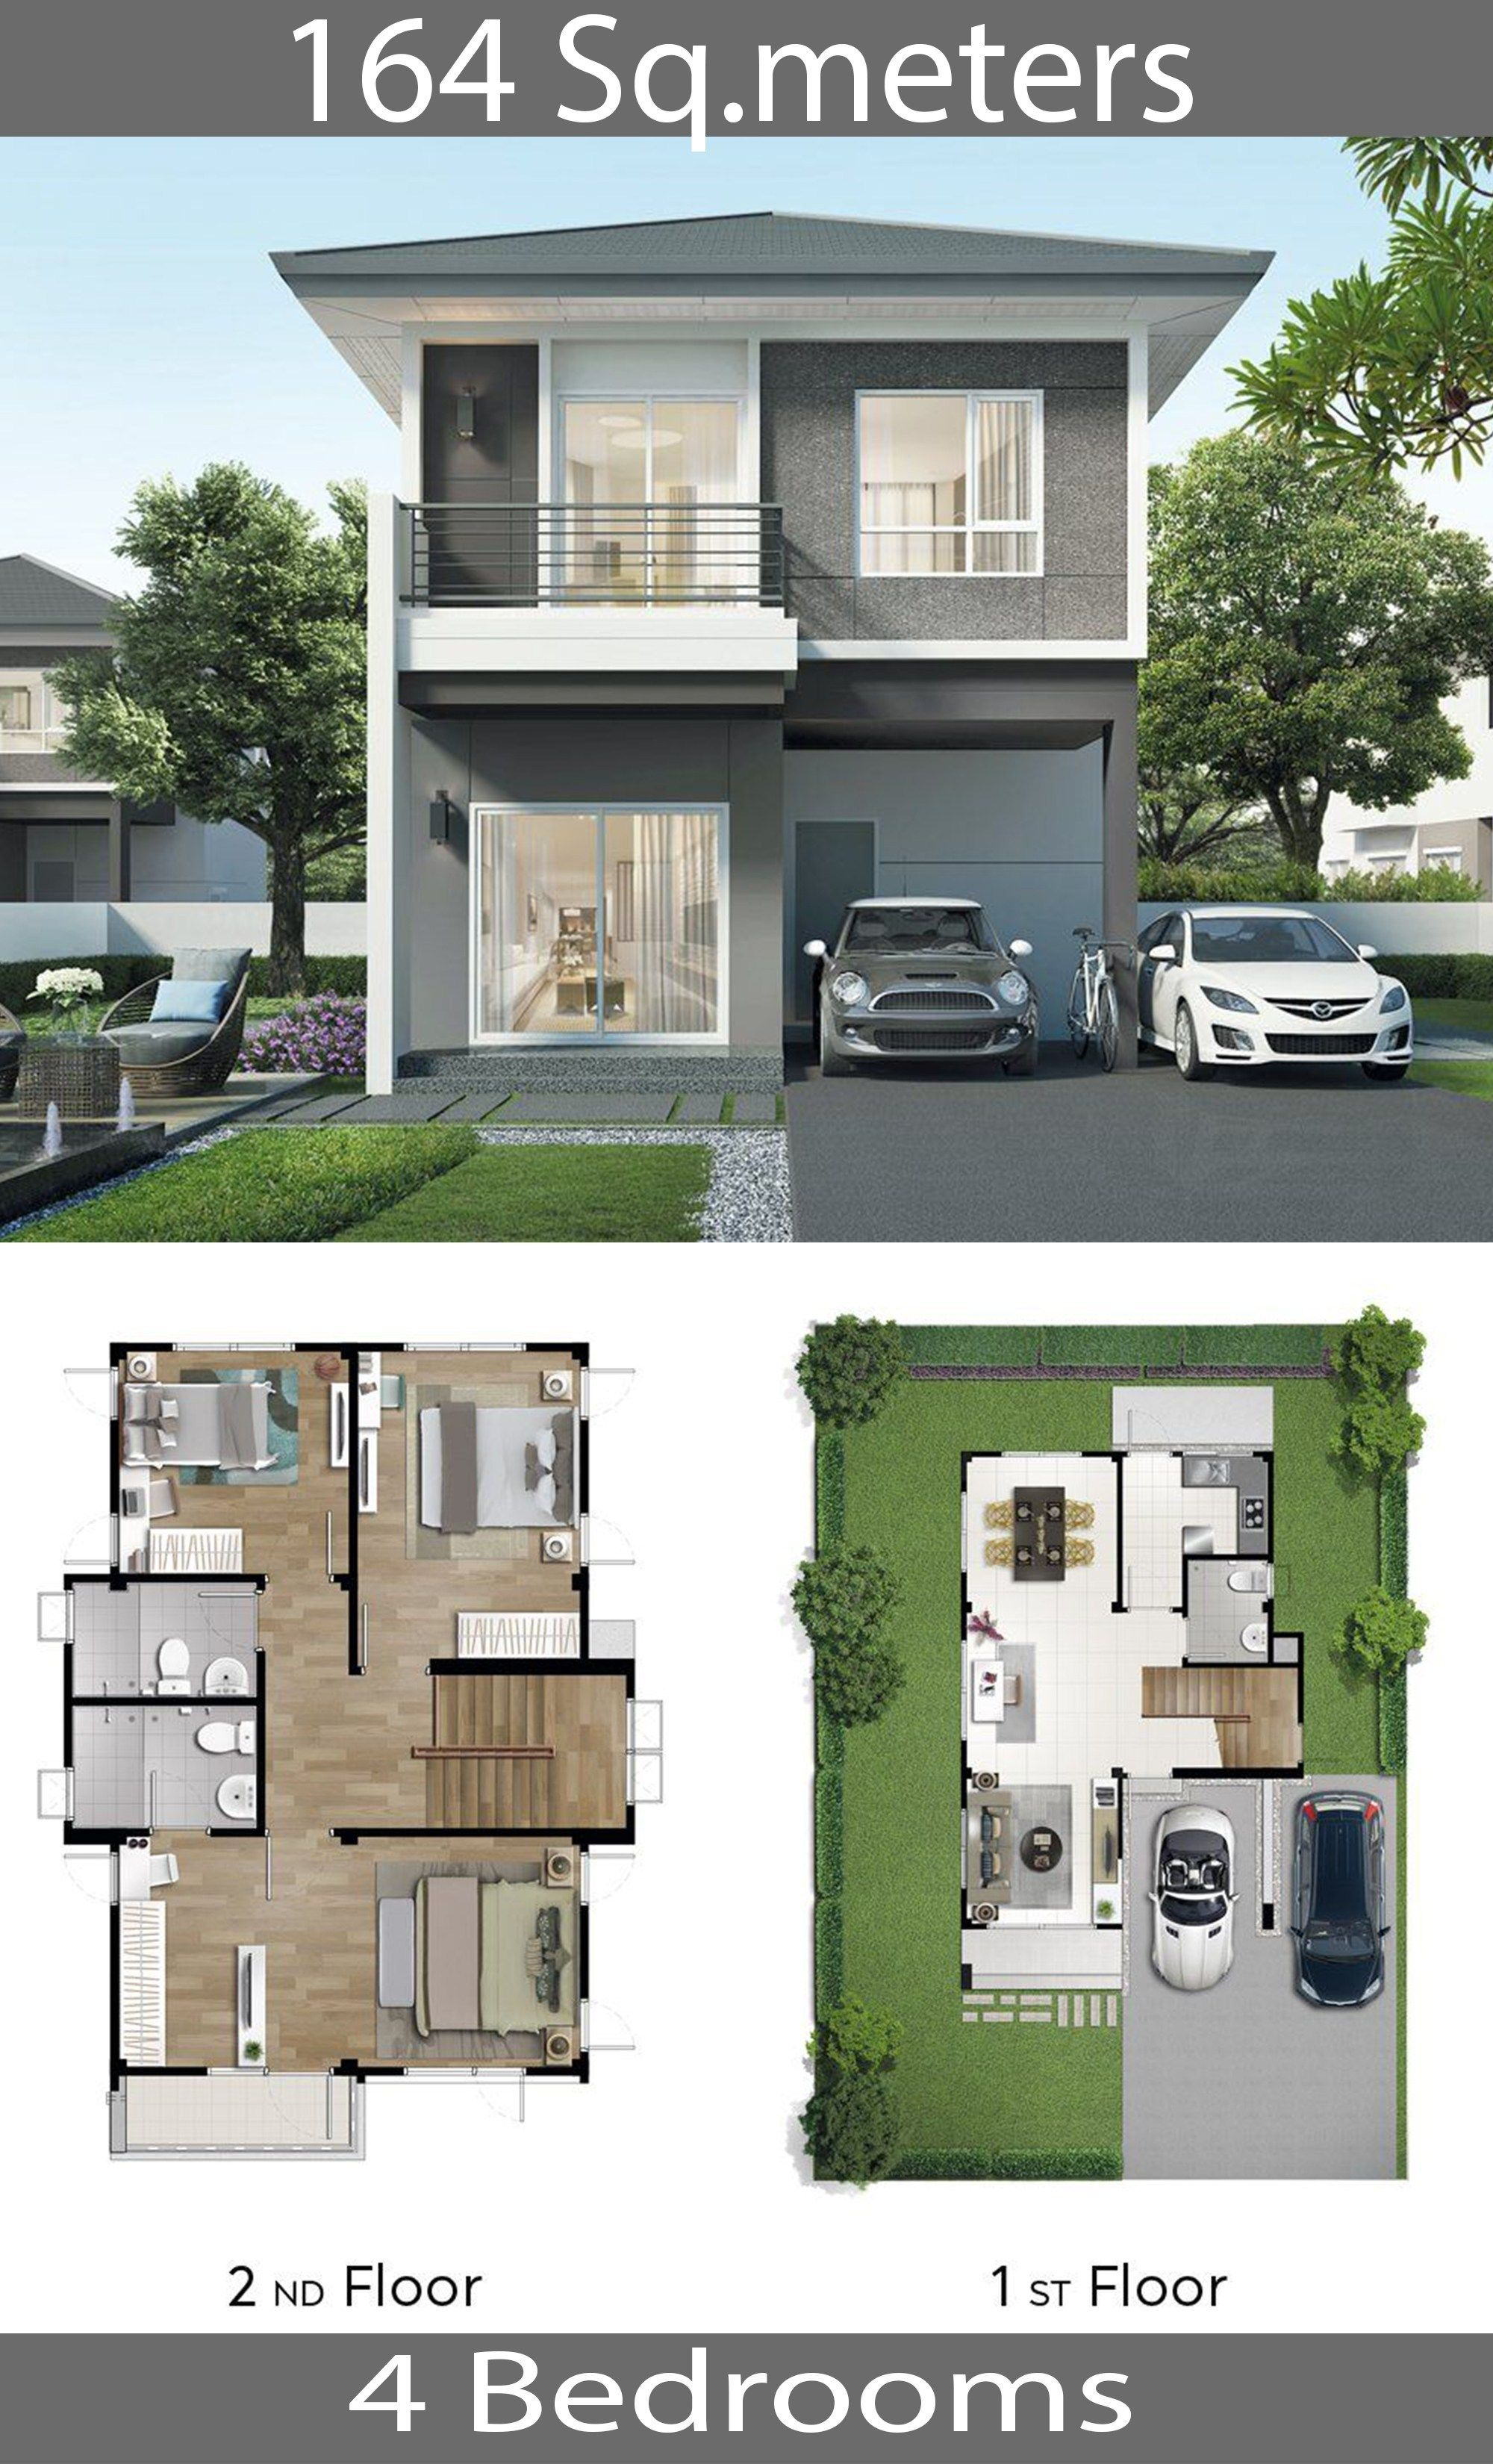 2 Story House 164 Sq M With 4 Bedrooms House Description Number Of Floors 2 Storey Housebedroom 4 House Plan Gallery Model House Plan Two Story House Design